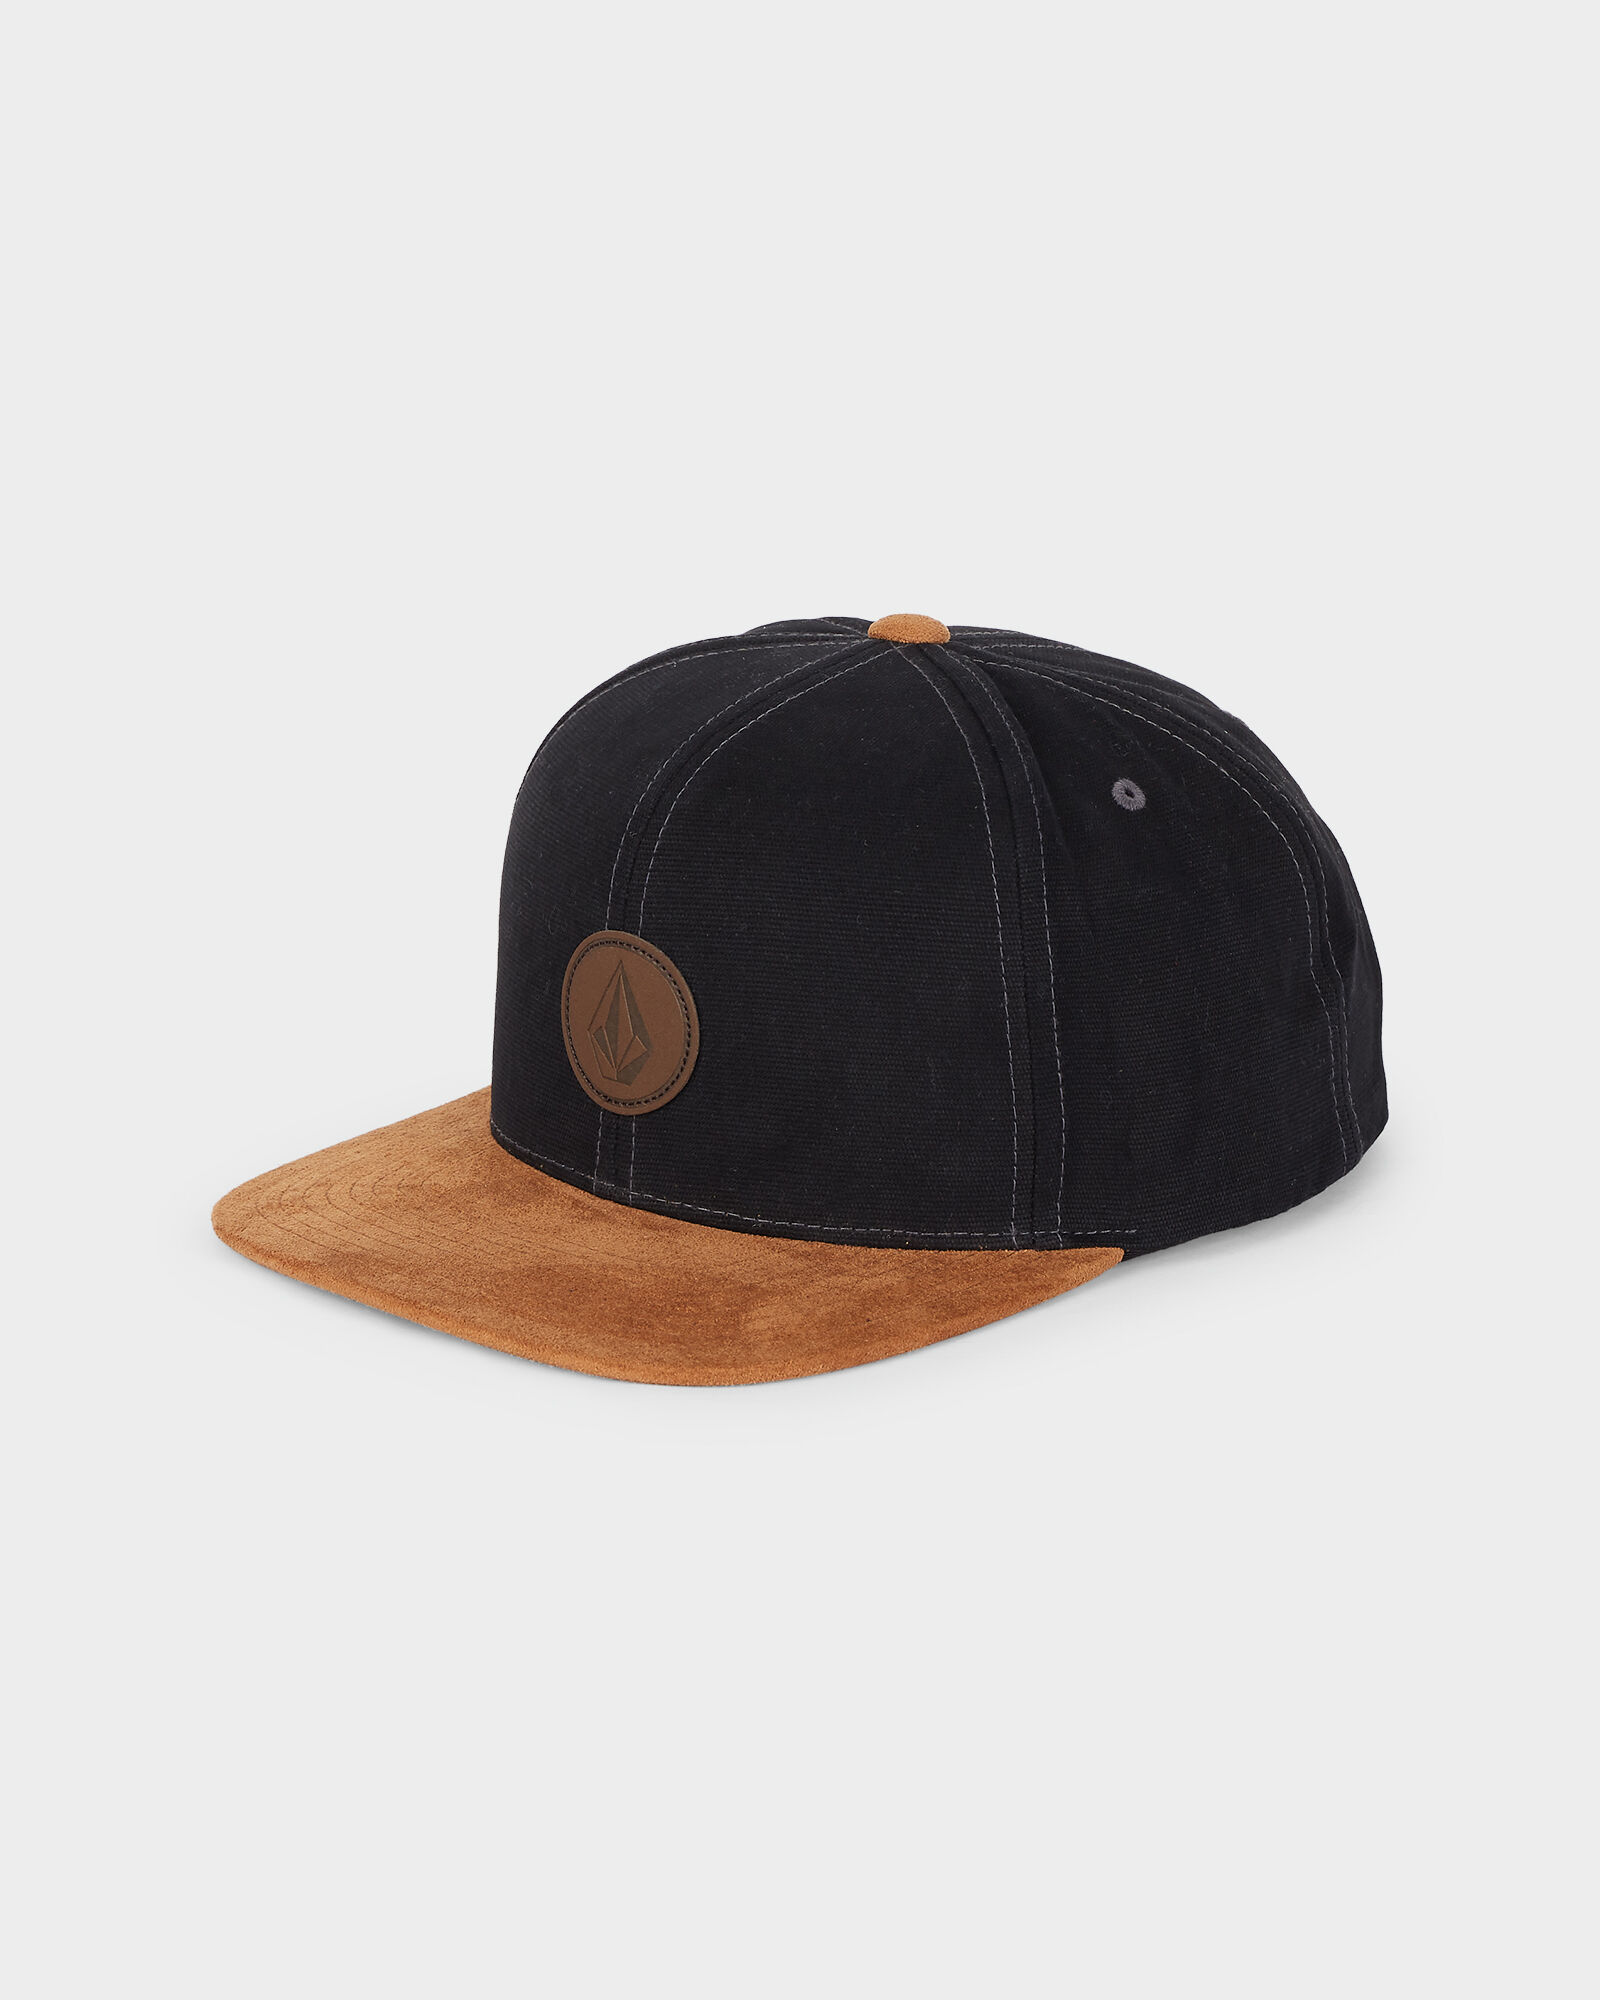 c404e31a3007a ... shop the product image is missing volcom quarter fabric hat 754c9 6862d